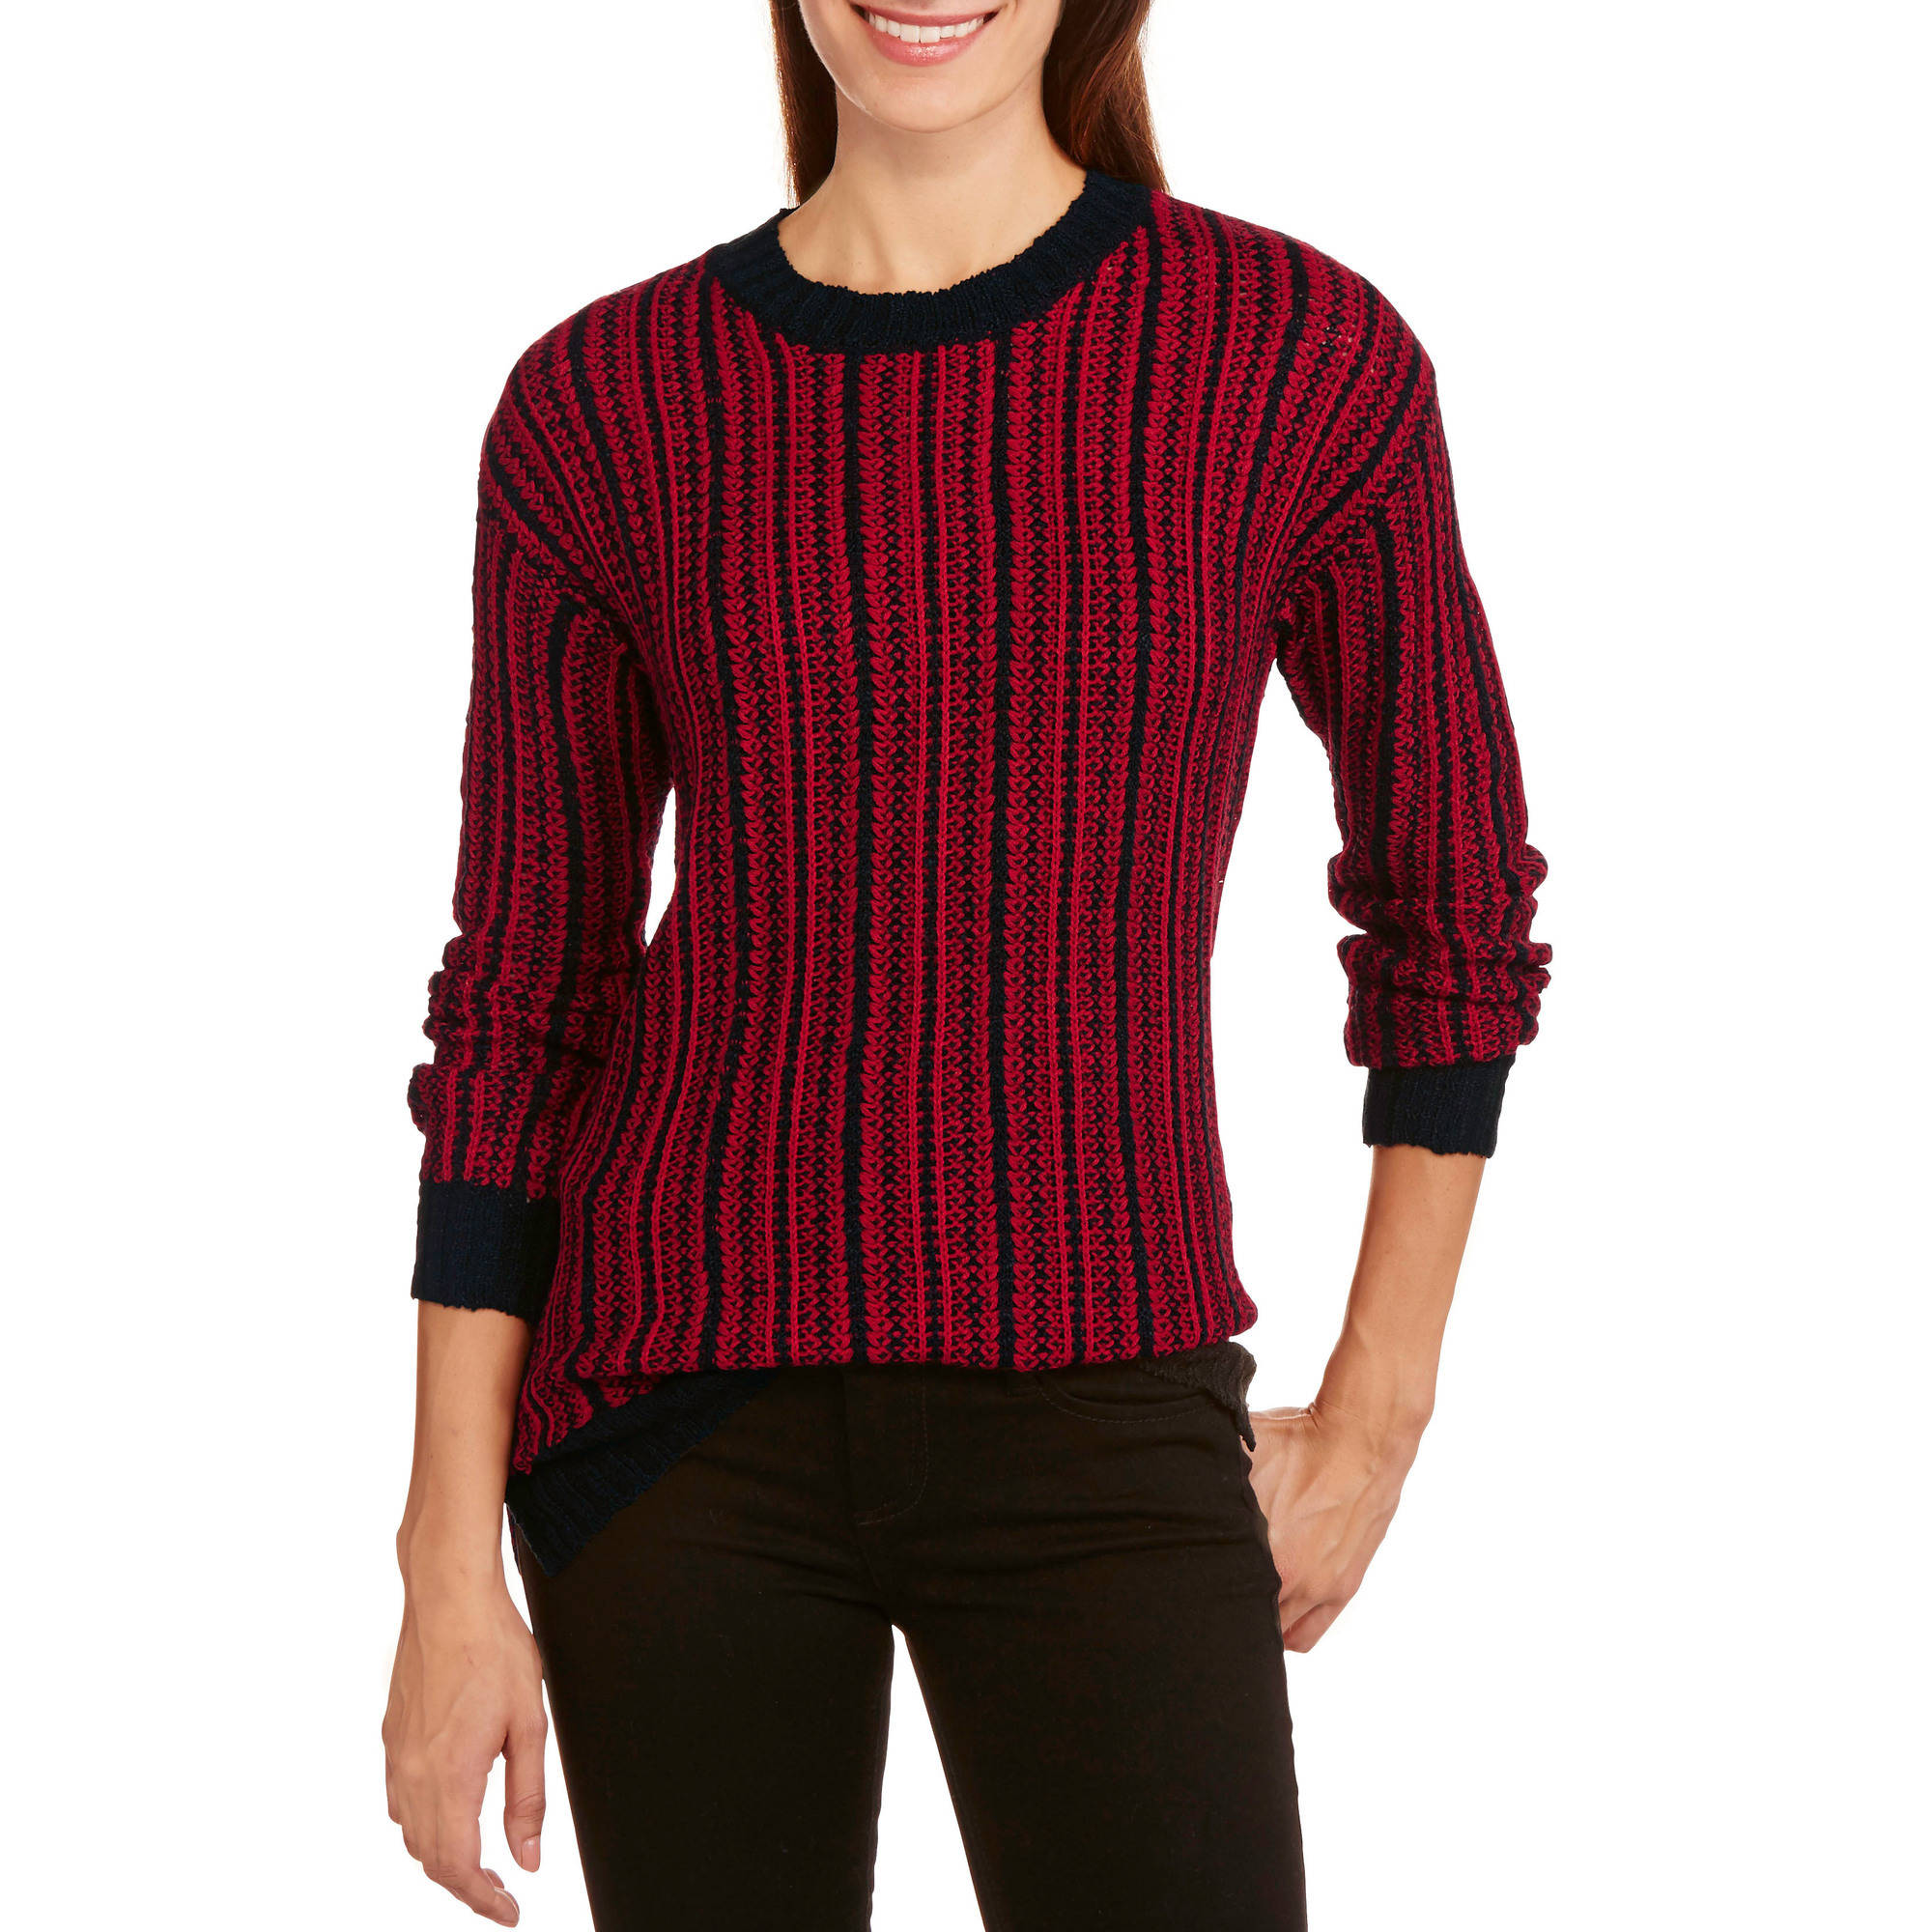 Allison Brittney Women's Novelty Stitch Hi-Low Sweater